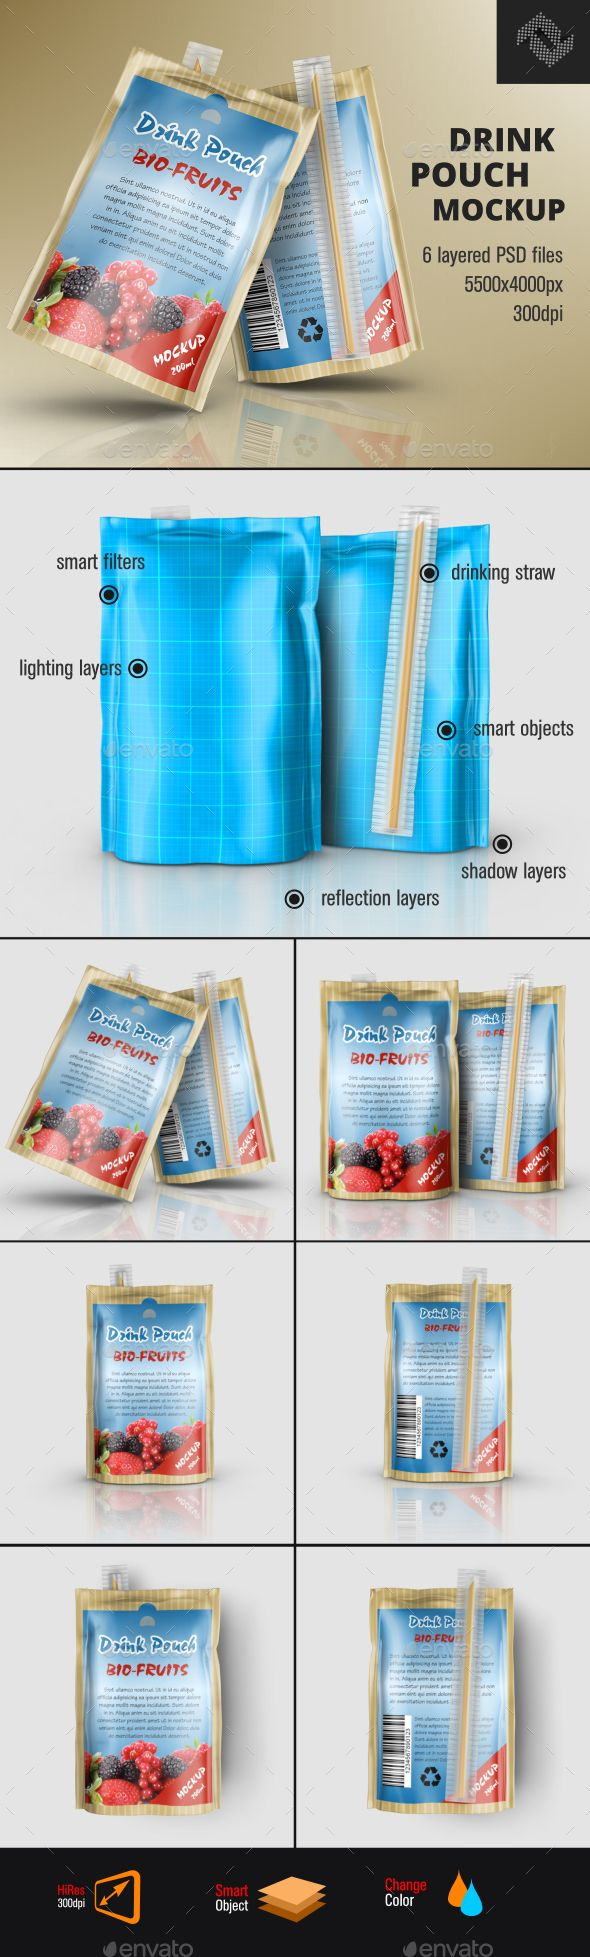 Laminated Foil Drink Pouch Mockup. Download here: http://graphicriver.net/item/laminated-foil-drink-pouch-mockup/15719528?ref=ksioks